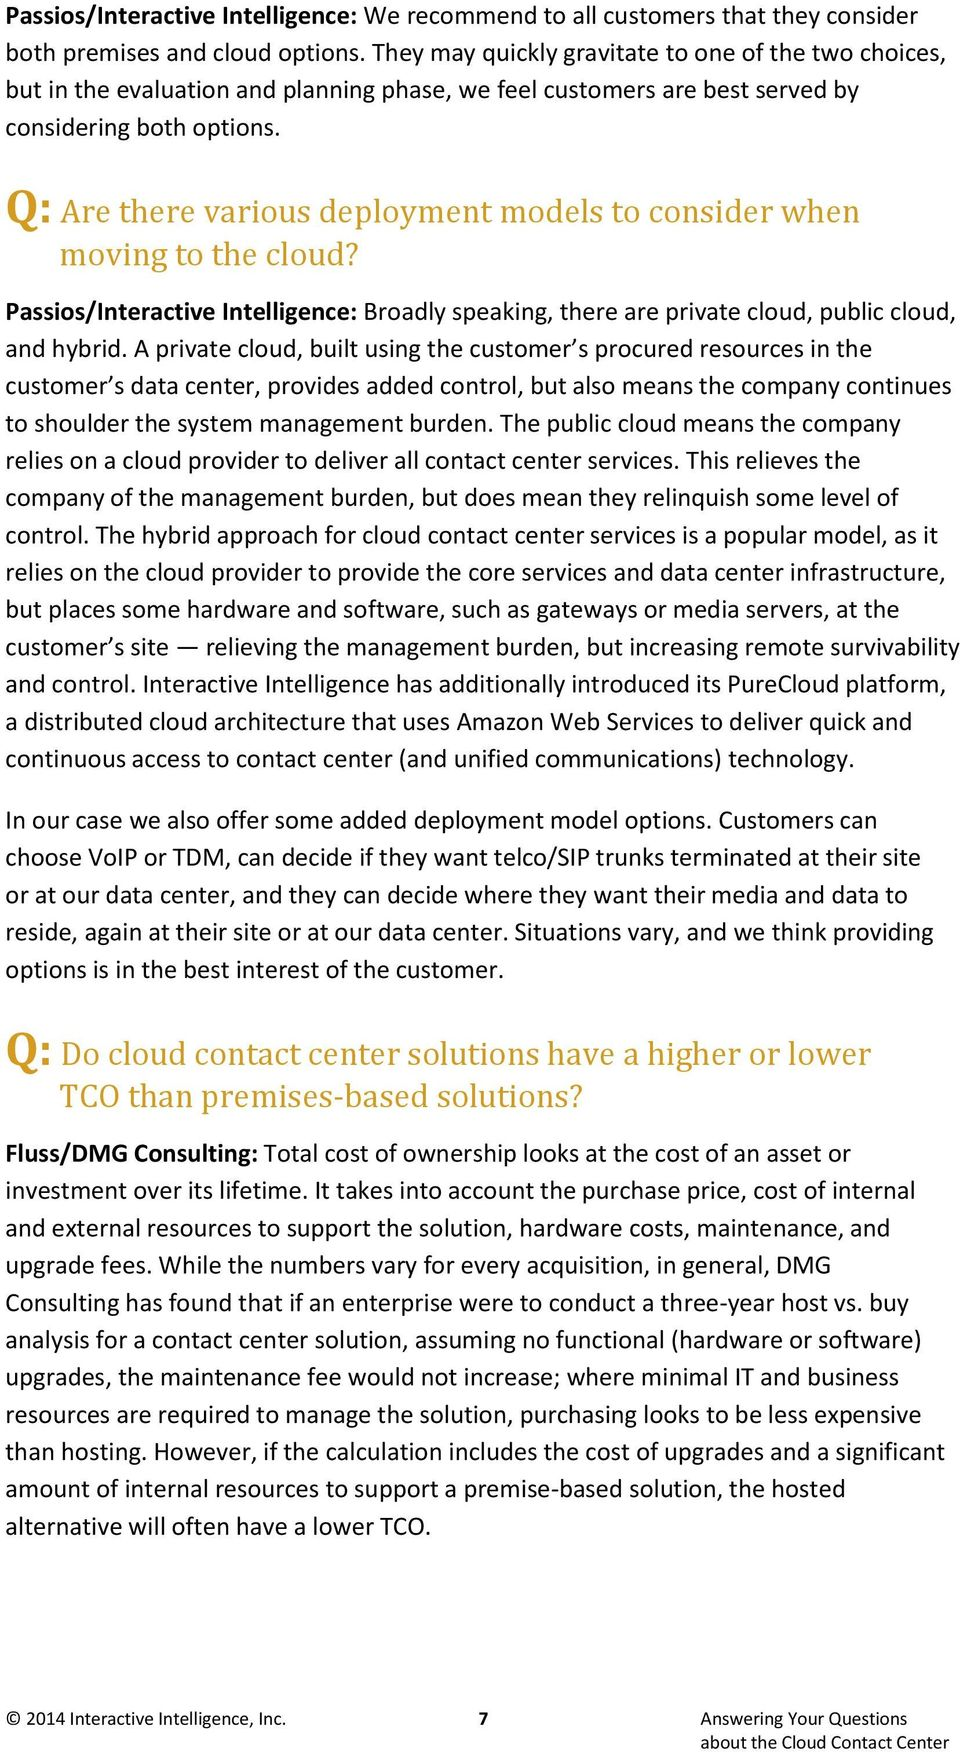 Q: Are there various deployment models to consider when moving to the cloud? Passios/Interactive Intelligence: Broadly speaking, there are private cloud, public cloud, and hybrid.